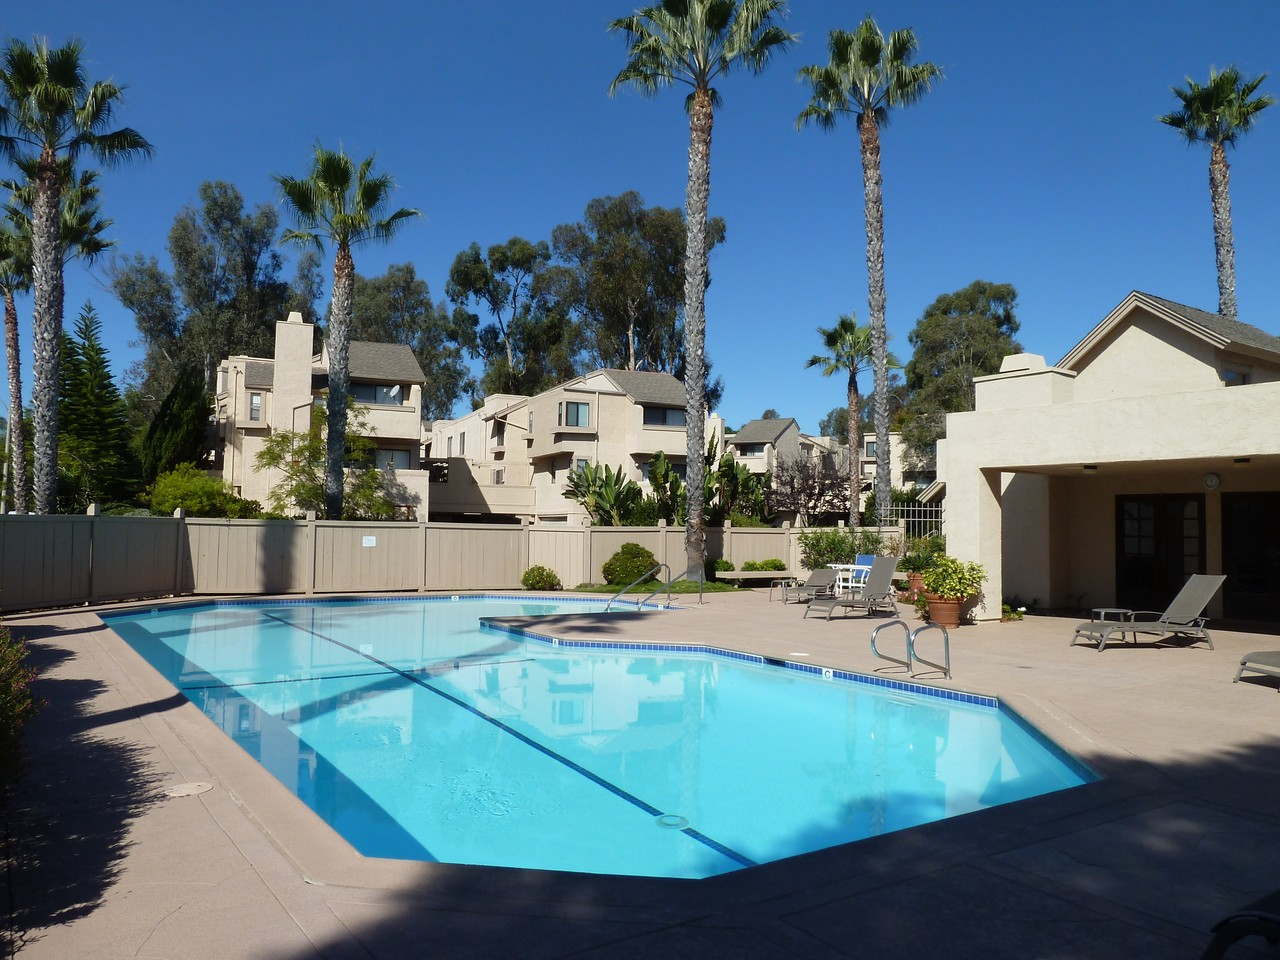 3288 Via Marin, San Diego, CA 92037 2 Bedroom Condo for Rent for ...